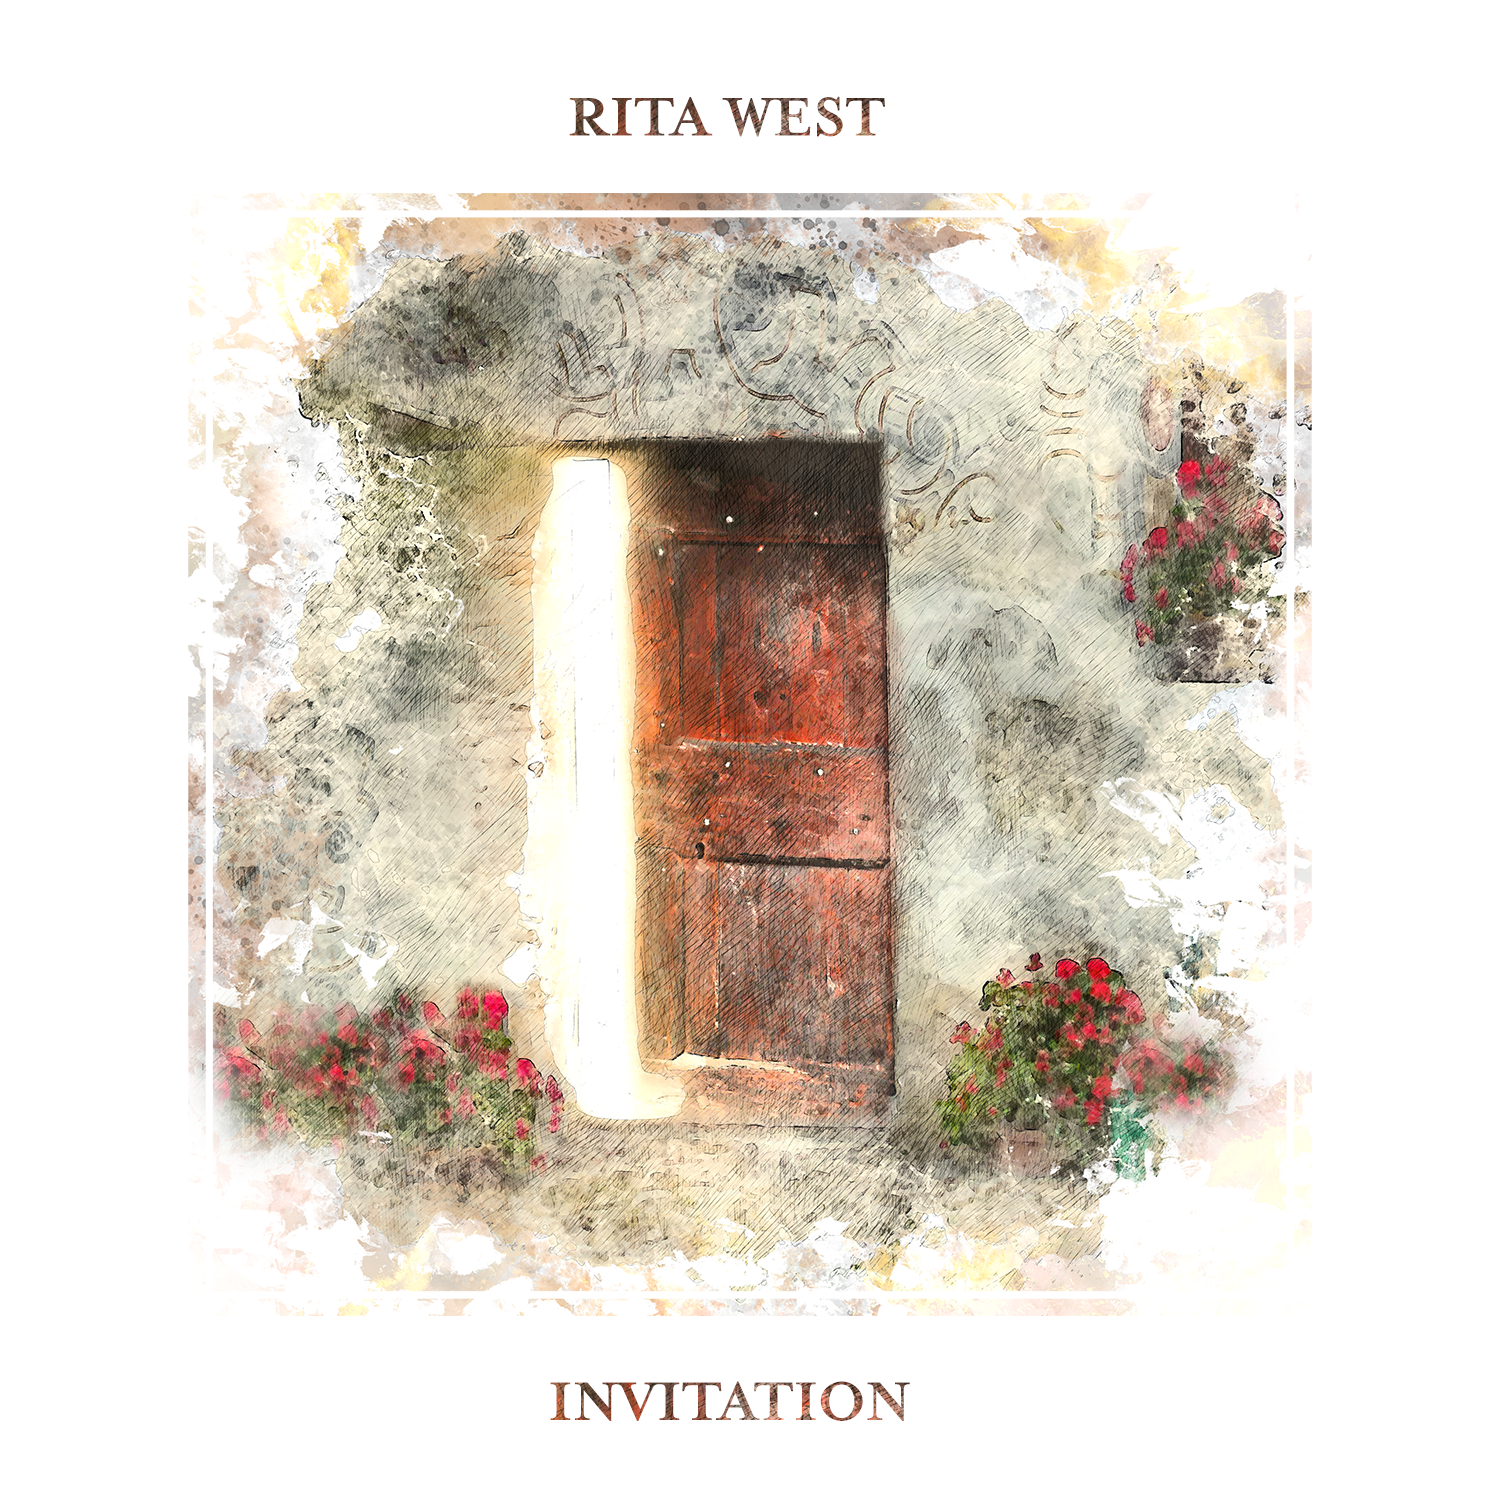 Rita West Invitation ARTWORK.png